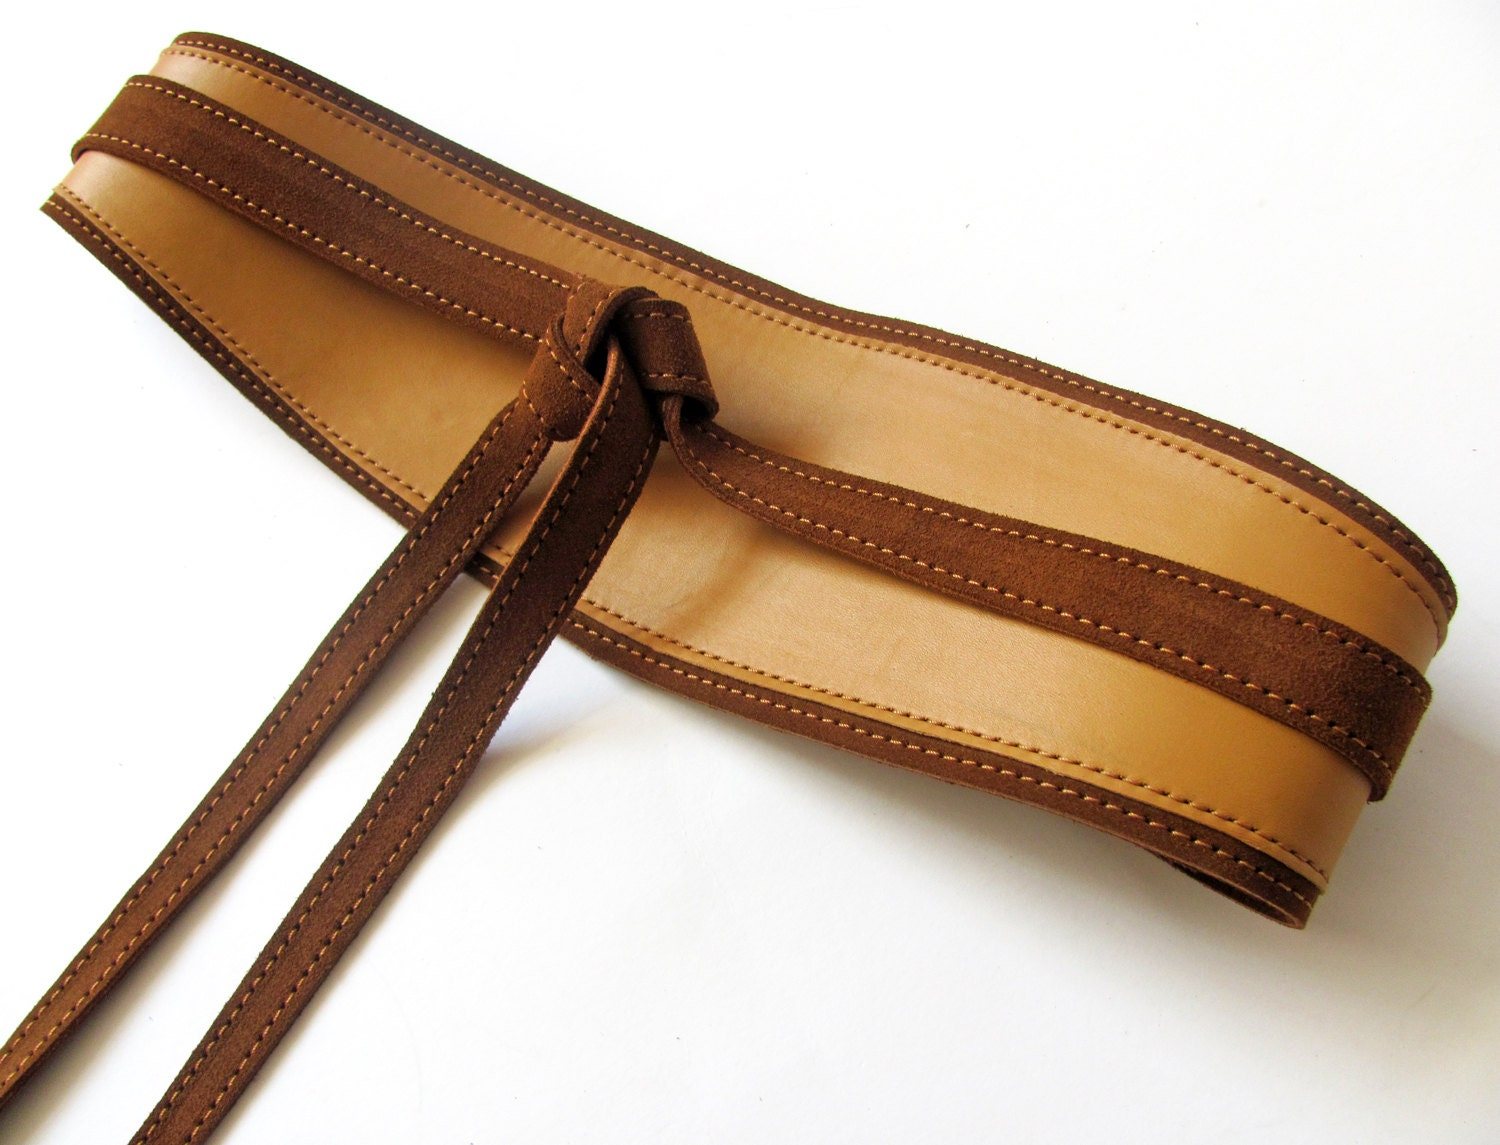 camel and brown leather obi belt beige color wide waist belt